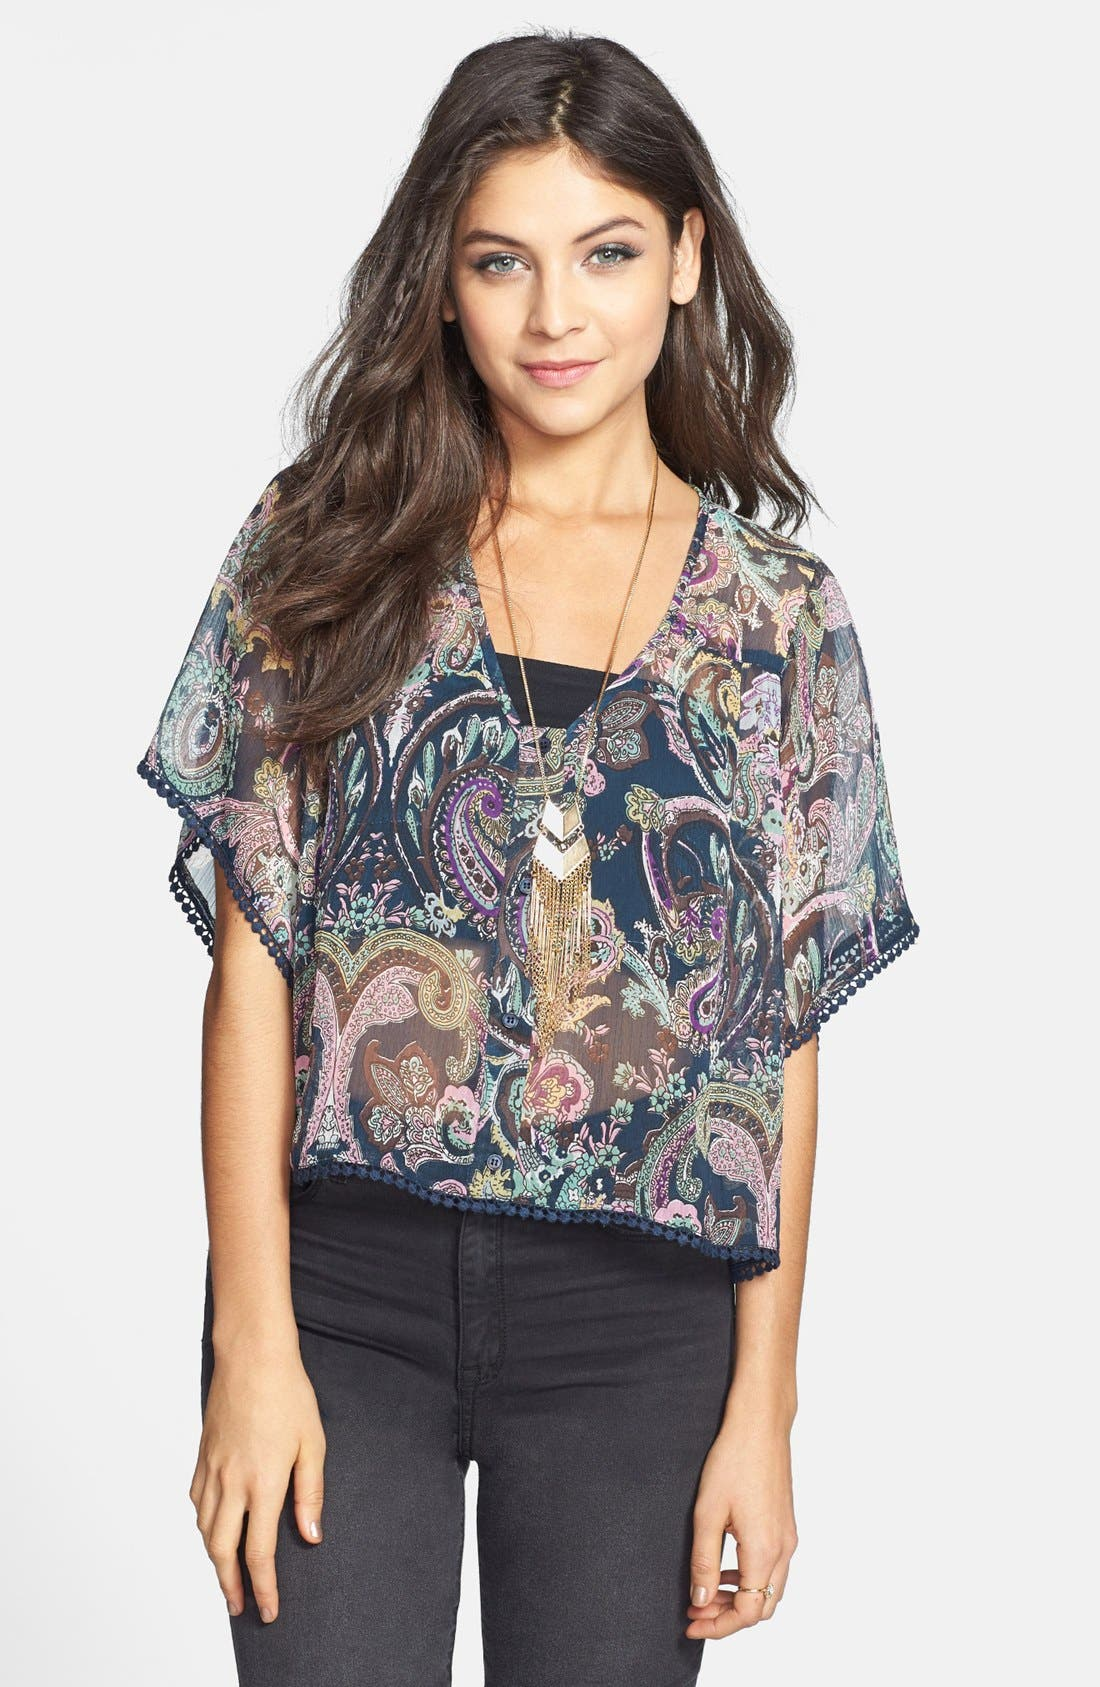 Alternate Image 1 Selected - Band of Gypsies Crochet Trim Print Chiffon Top (Juniors)